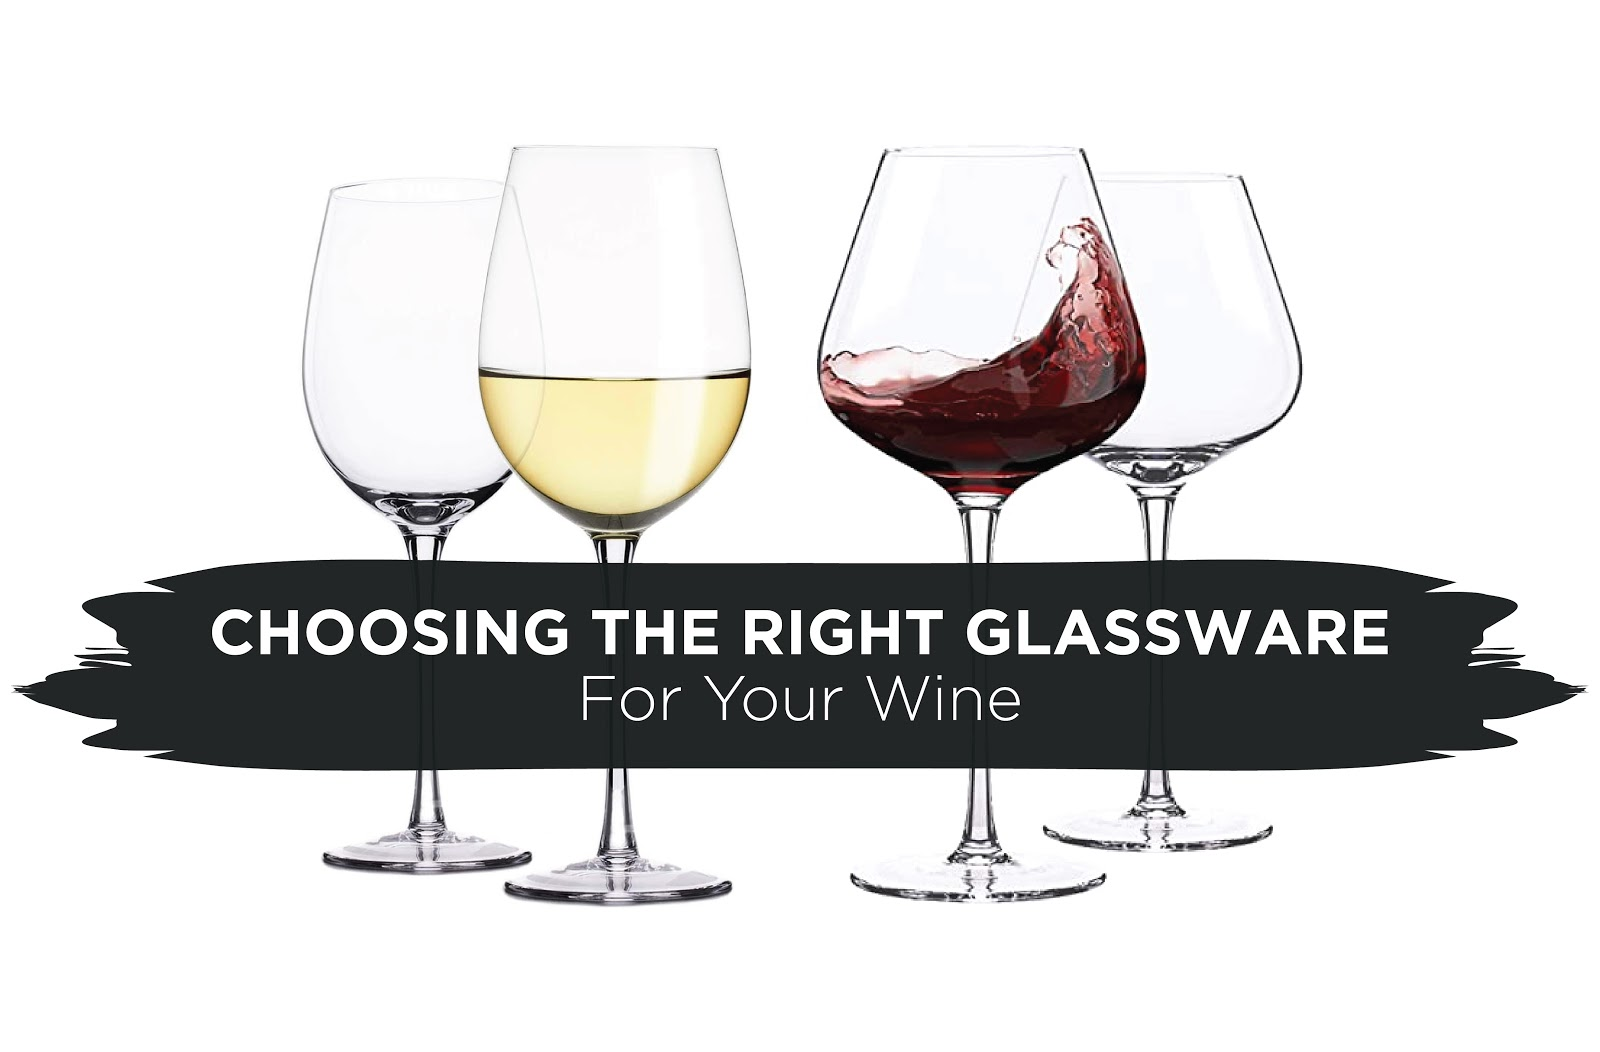 Choosing The Right Glassware For Your Wine